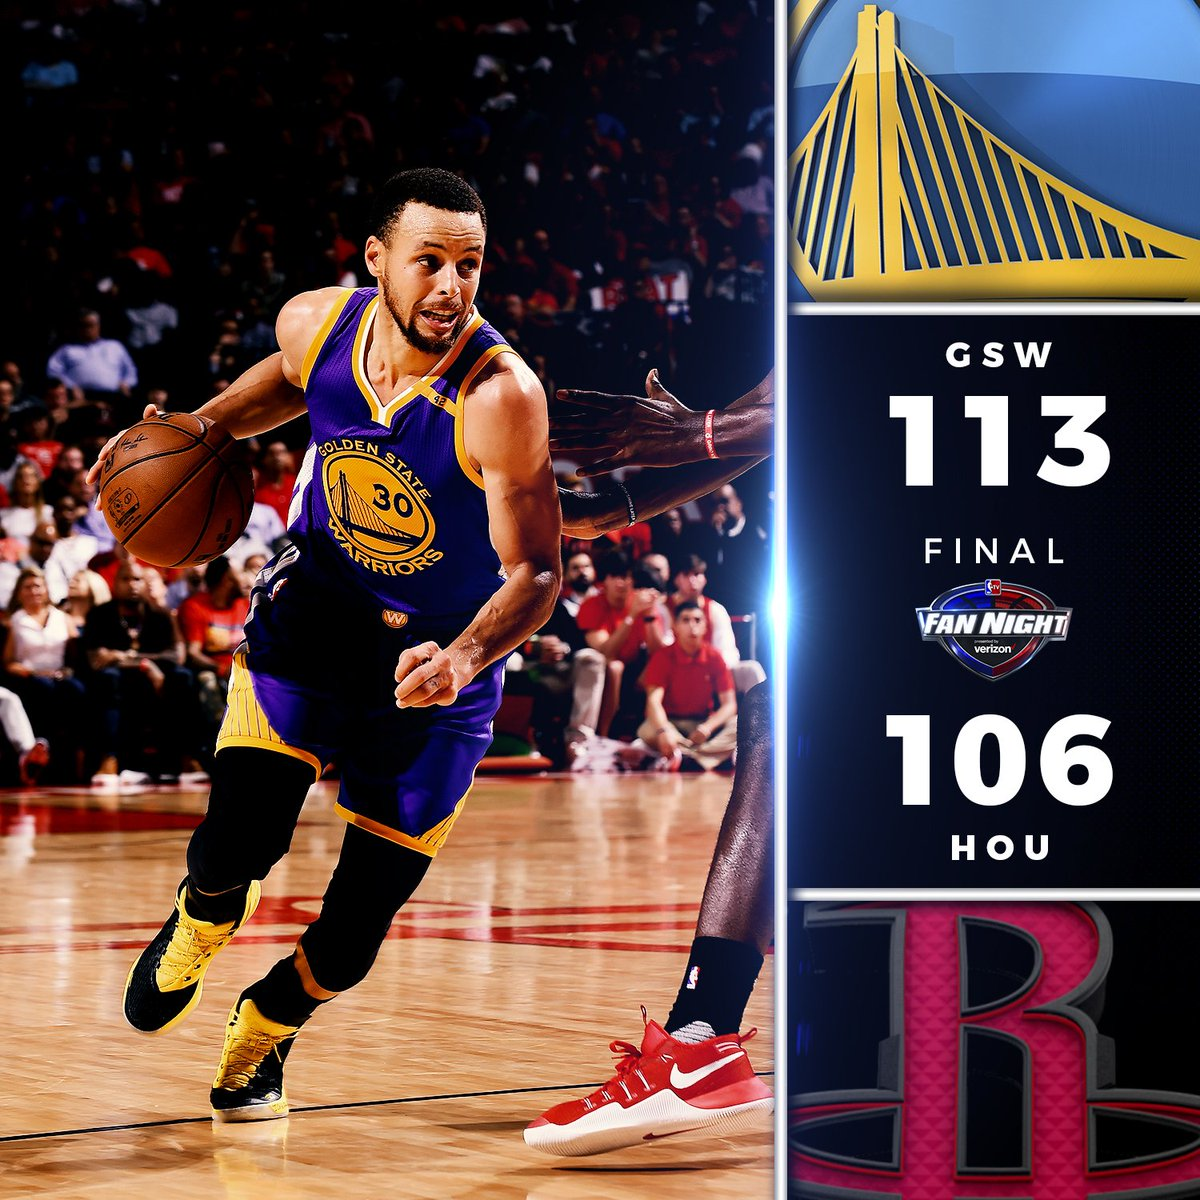 Steph Curry ignites for 32 points, 10 rebounds & 7 assists to lead the @warriors over Houston! #FanNight